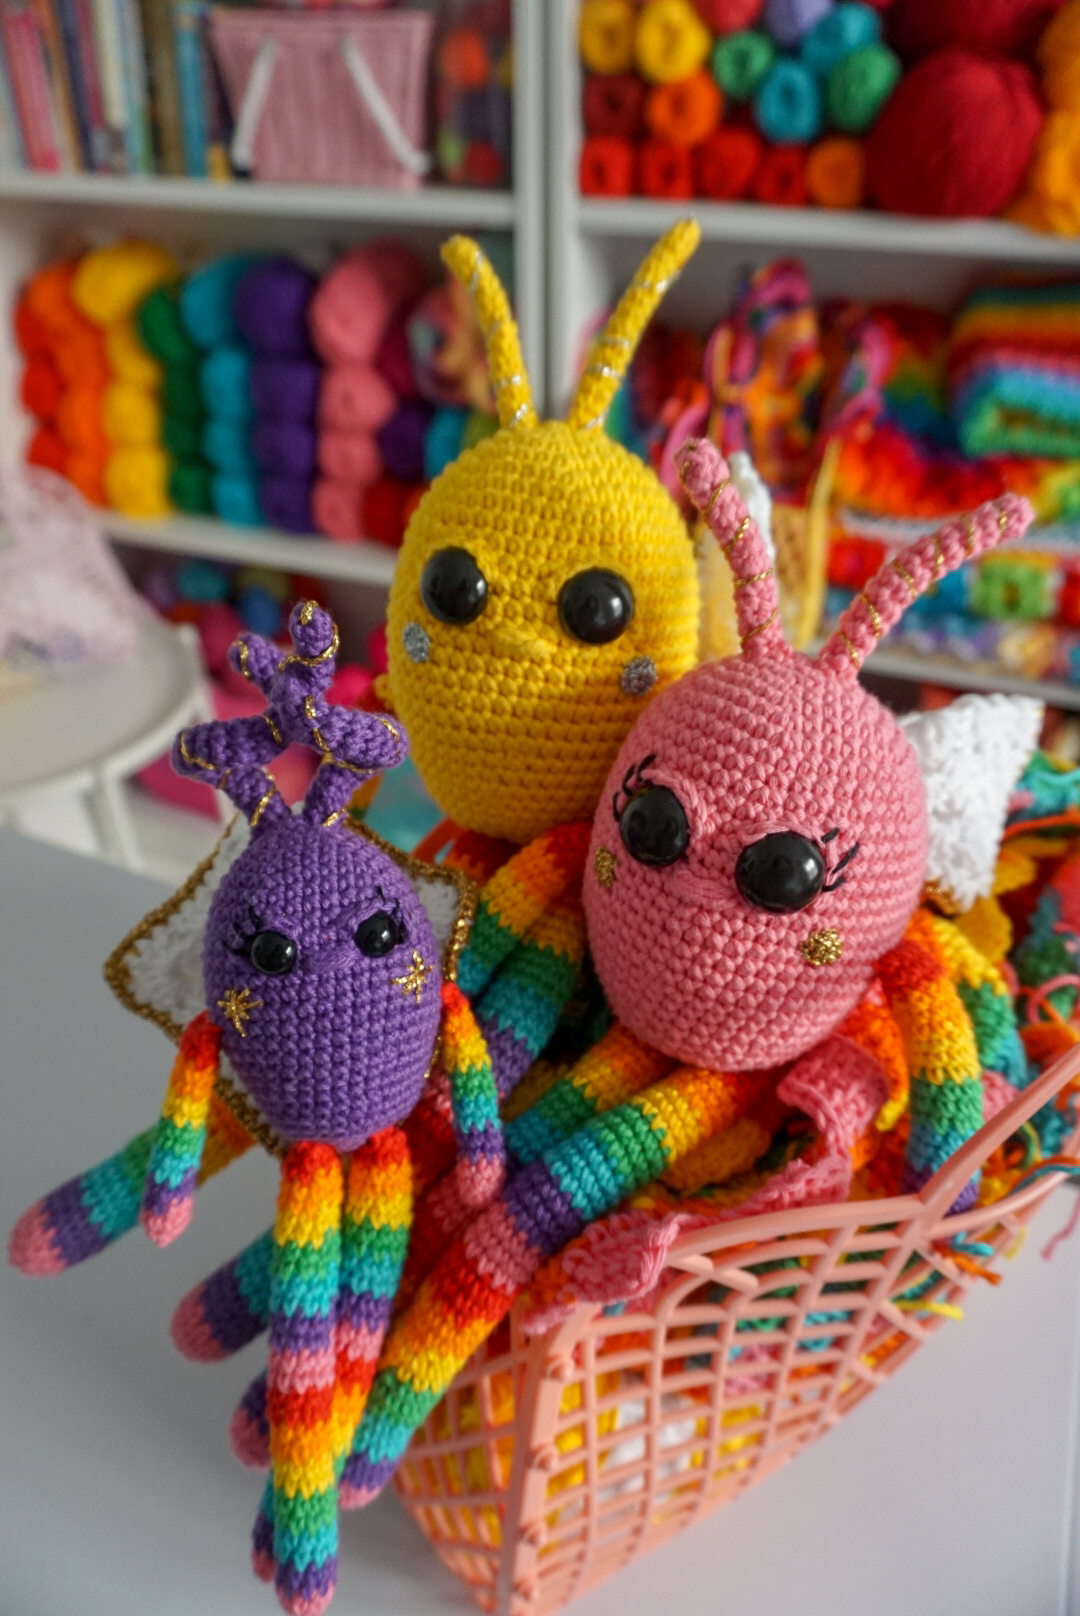 Amigurumi Pattern:  Rainbow Snuggle Bugs, by Little Cosy Things